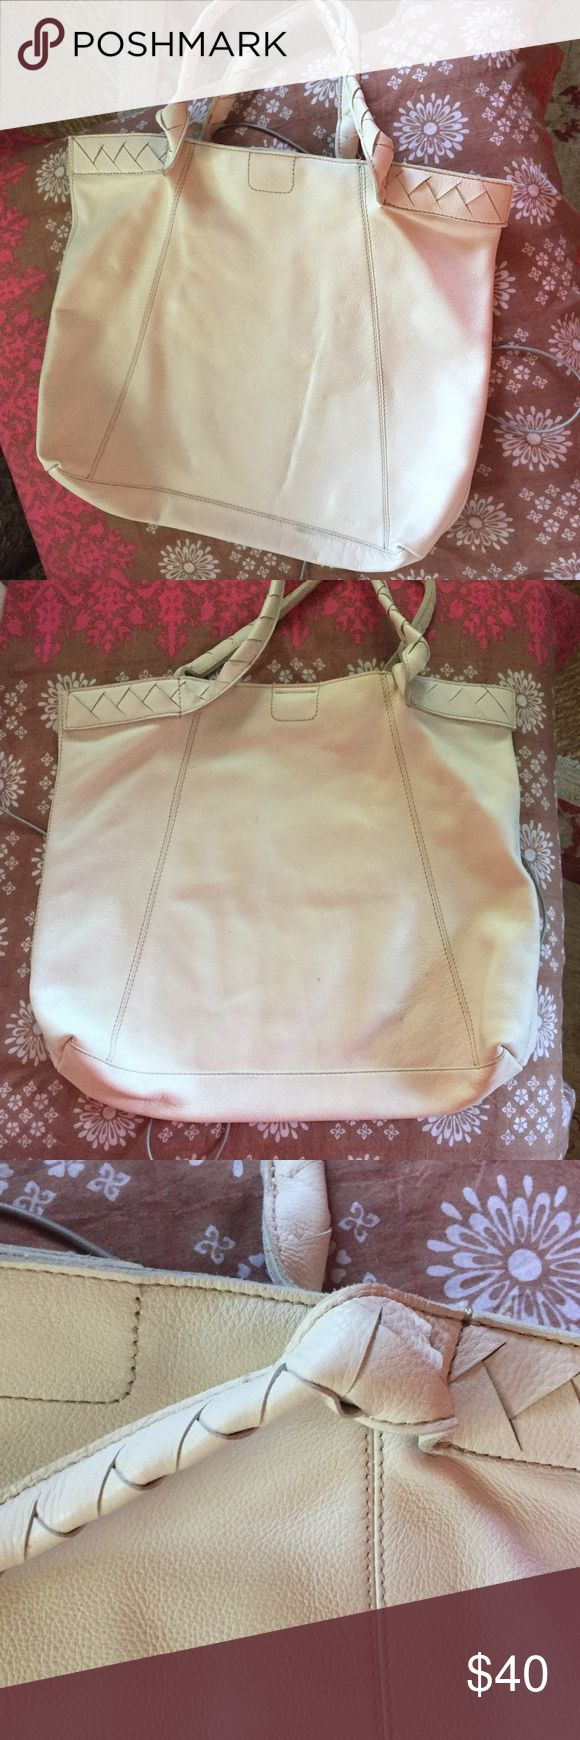 Banana Republic Soft cowhide white tote Very large soft white leather tote, nice detailing on handles, snap close with zip compartment, two slip pockets, very beautiful and clean, deep bag Banana Republic Bags Totes